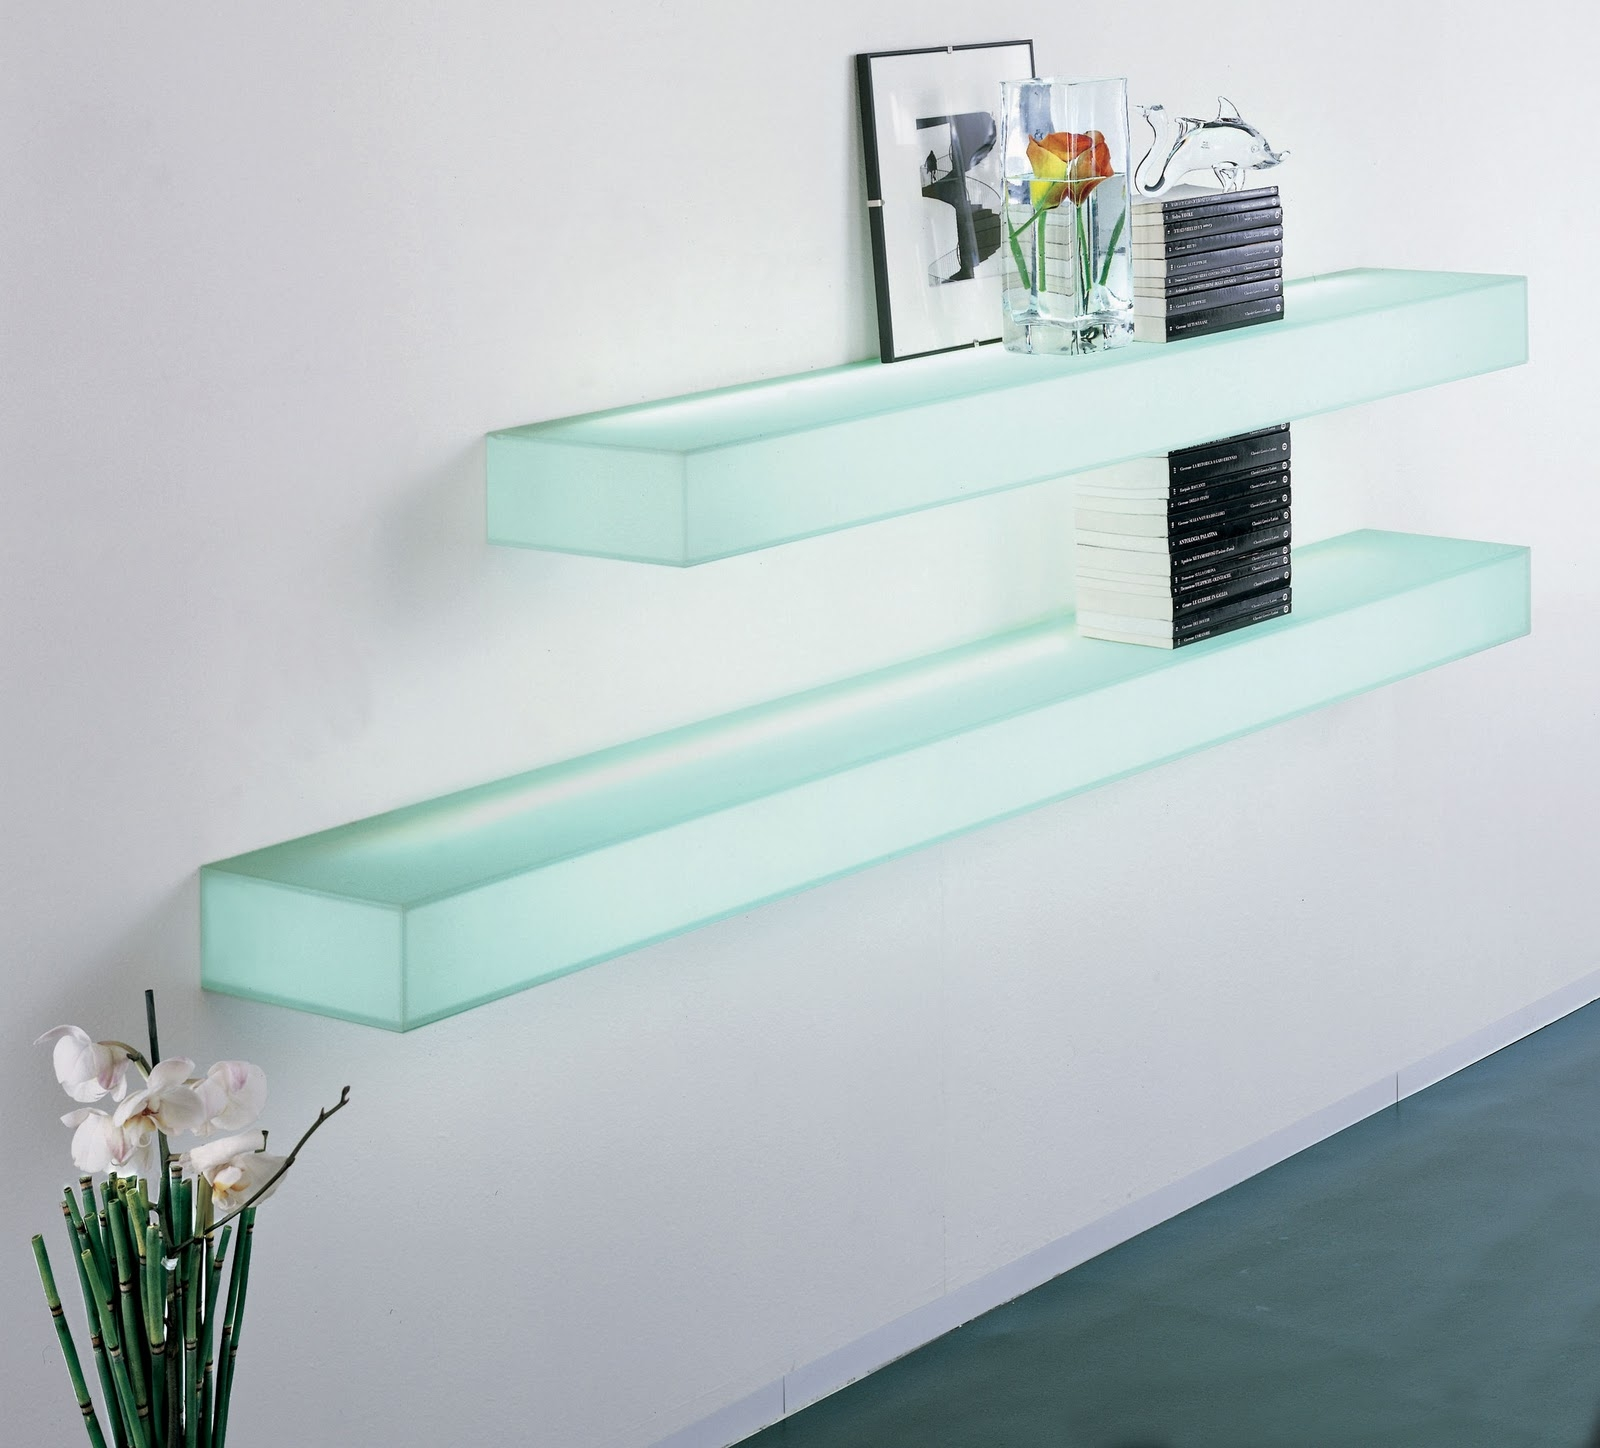 Furniture Awesome Illuminated Glass Bar Shelves Led Shelves W With Regard To Illuminated Glass Shelves (Image 2 of 15)